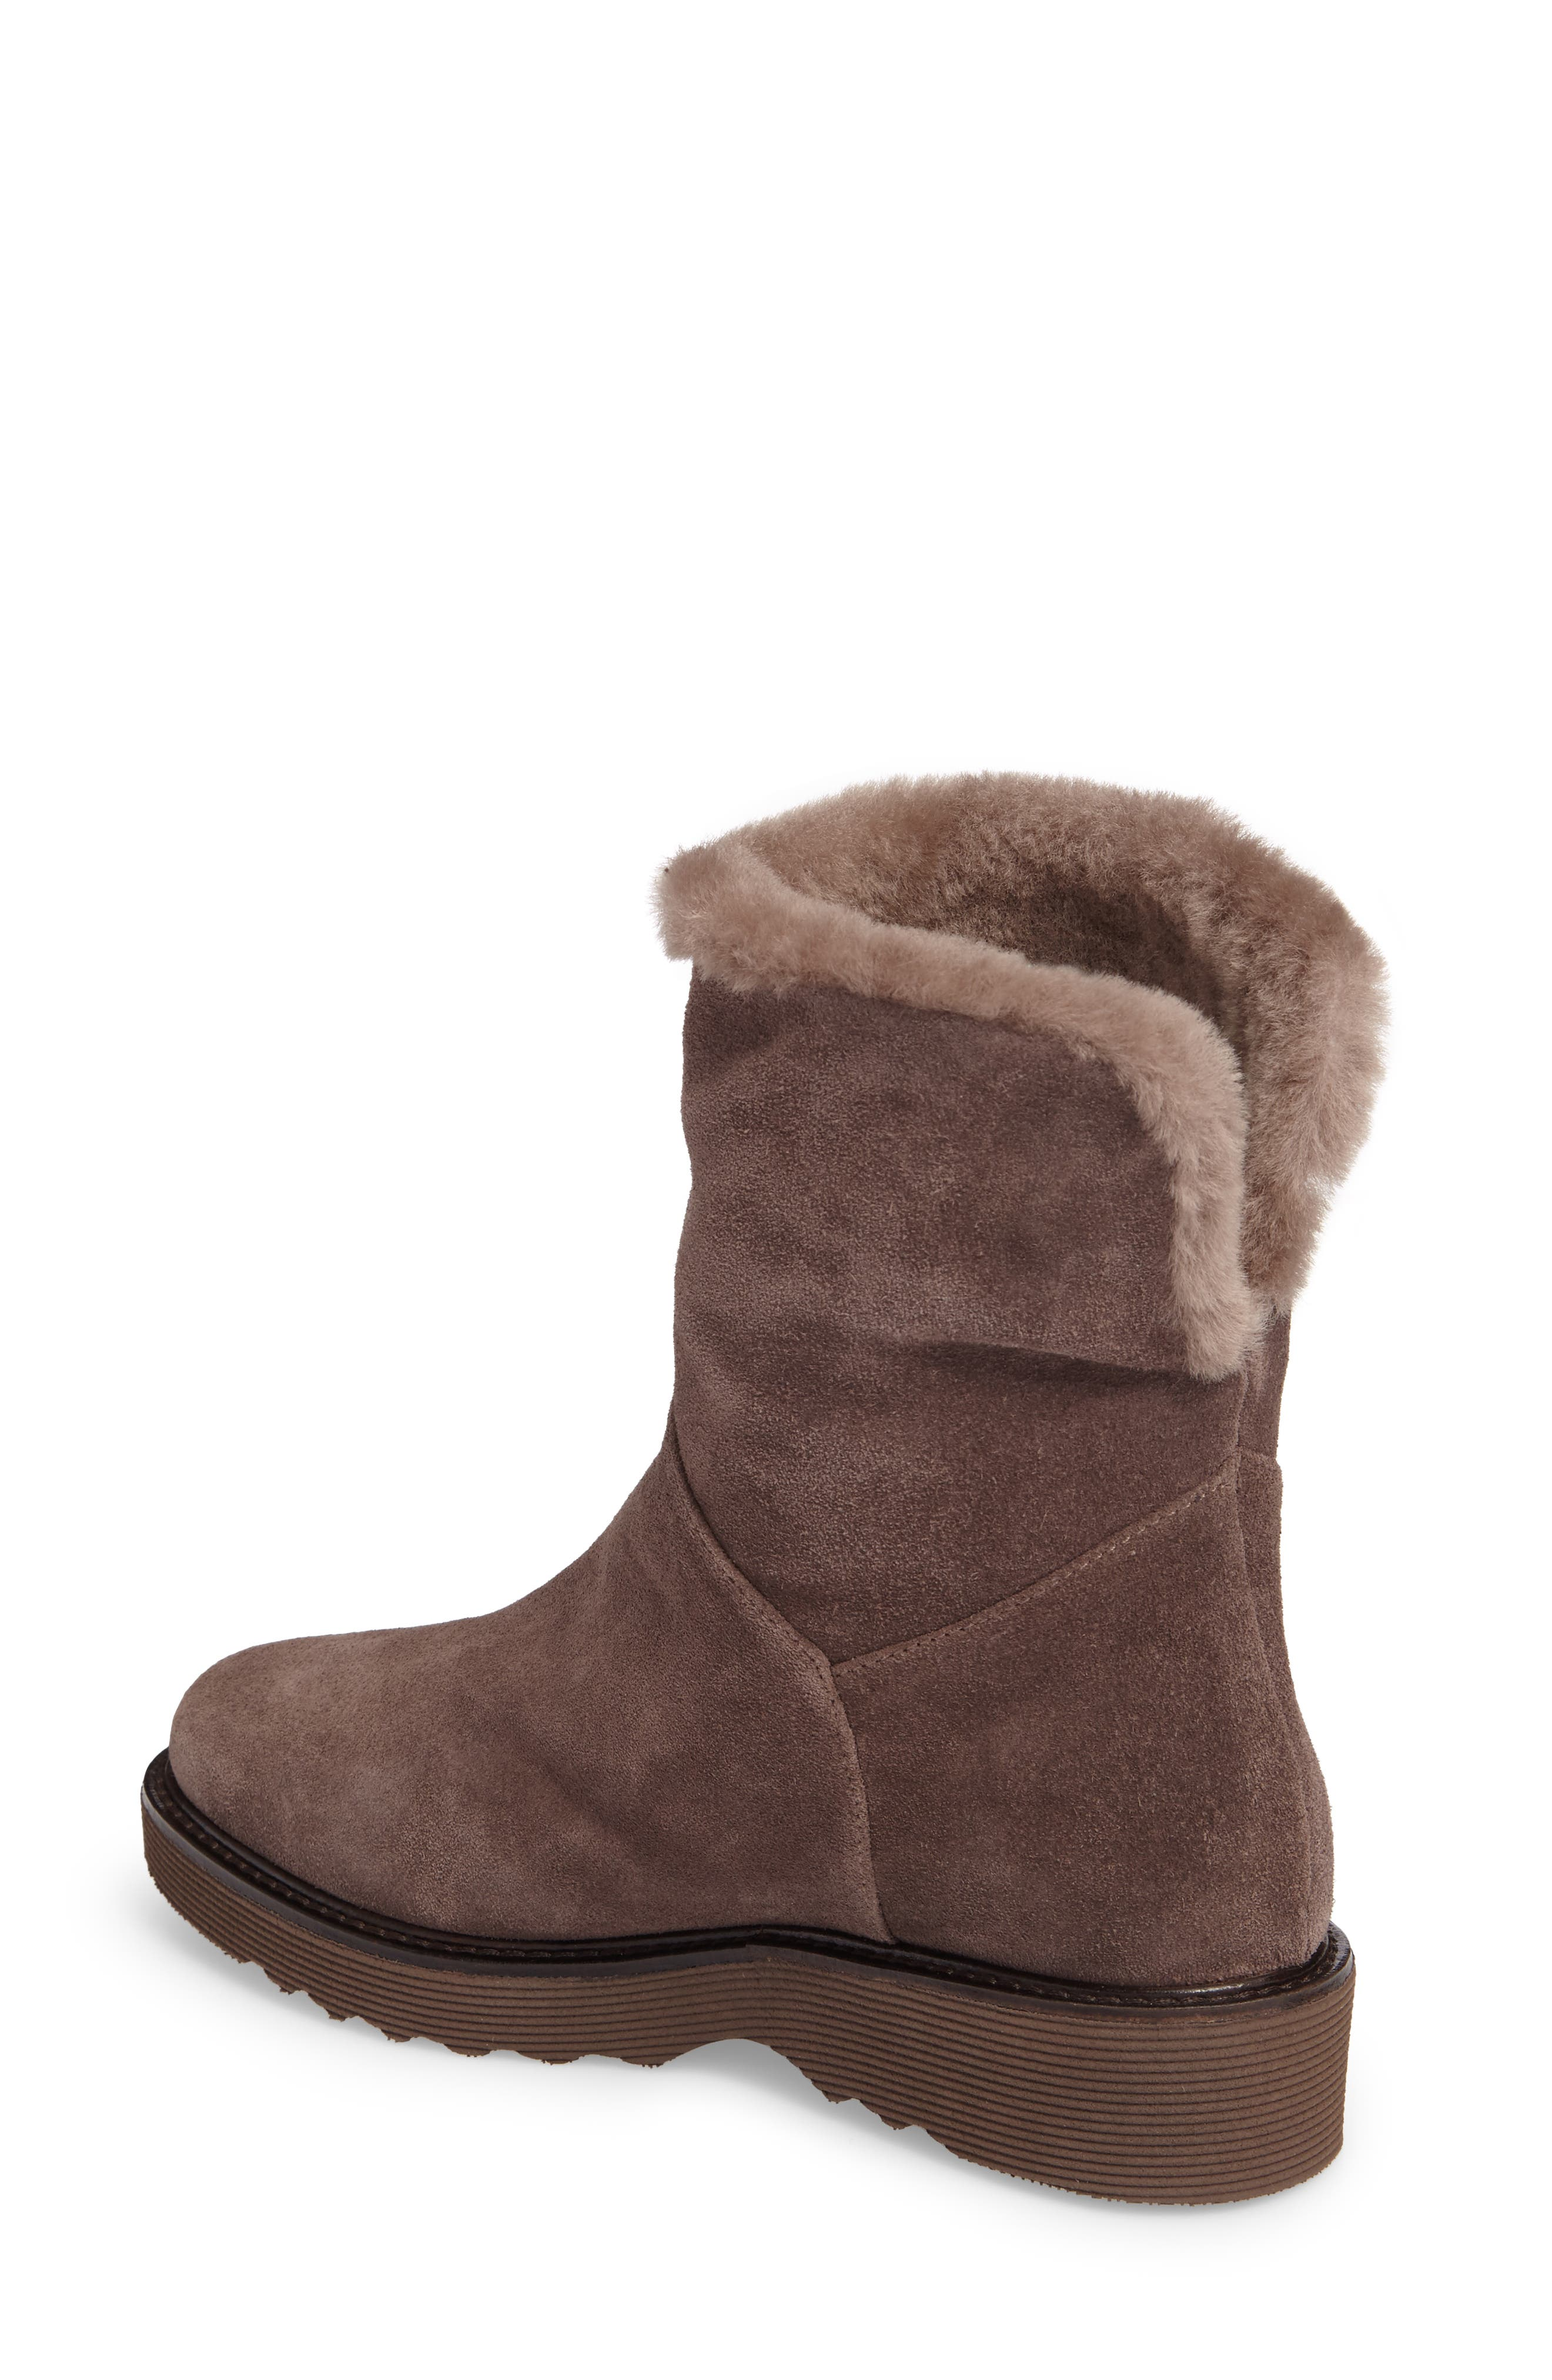 Alternate Image 2  - Aquatalia Kimberly Weatherproof Genuine Shearling Bootie (Women)